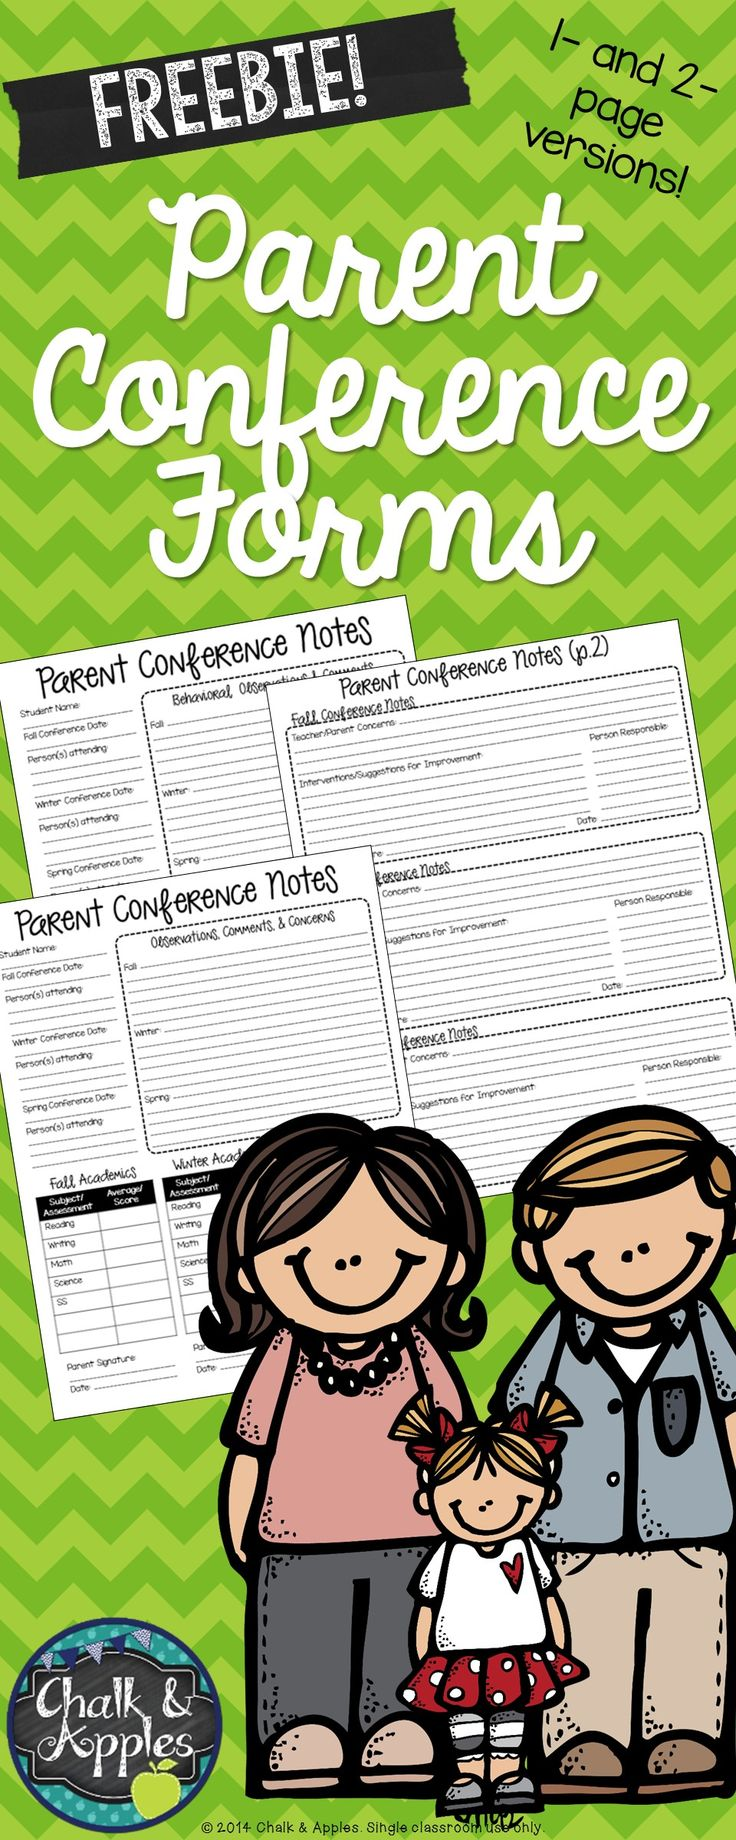 FREE Parent Conference Forms! Two versions are included, a one-page quick form and a two-page more detailed version. Behavioral observations & concerns, current grades and scores on school-side assessments, and interventions/suggestions for improvement. This one form covers conferences for fall, winter, and spring!